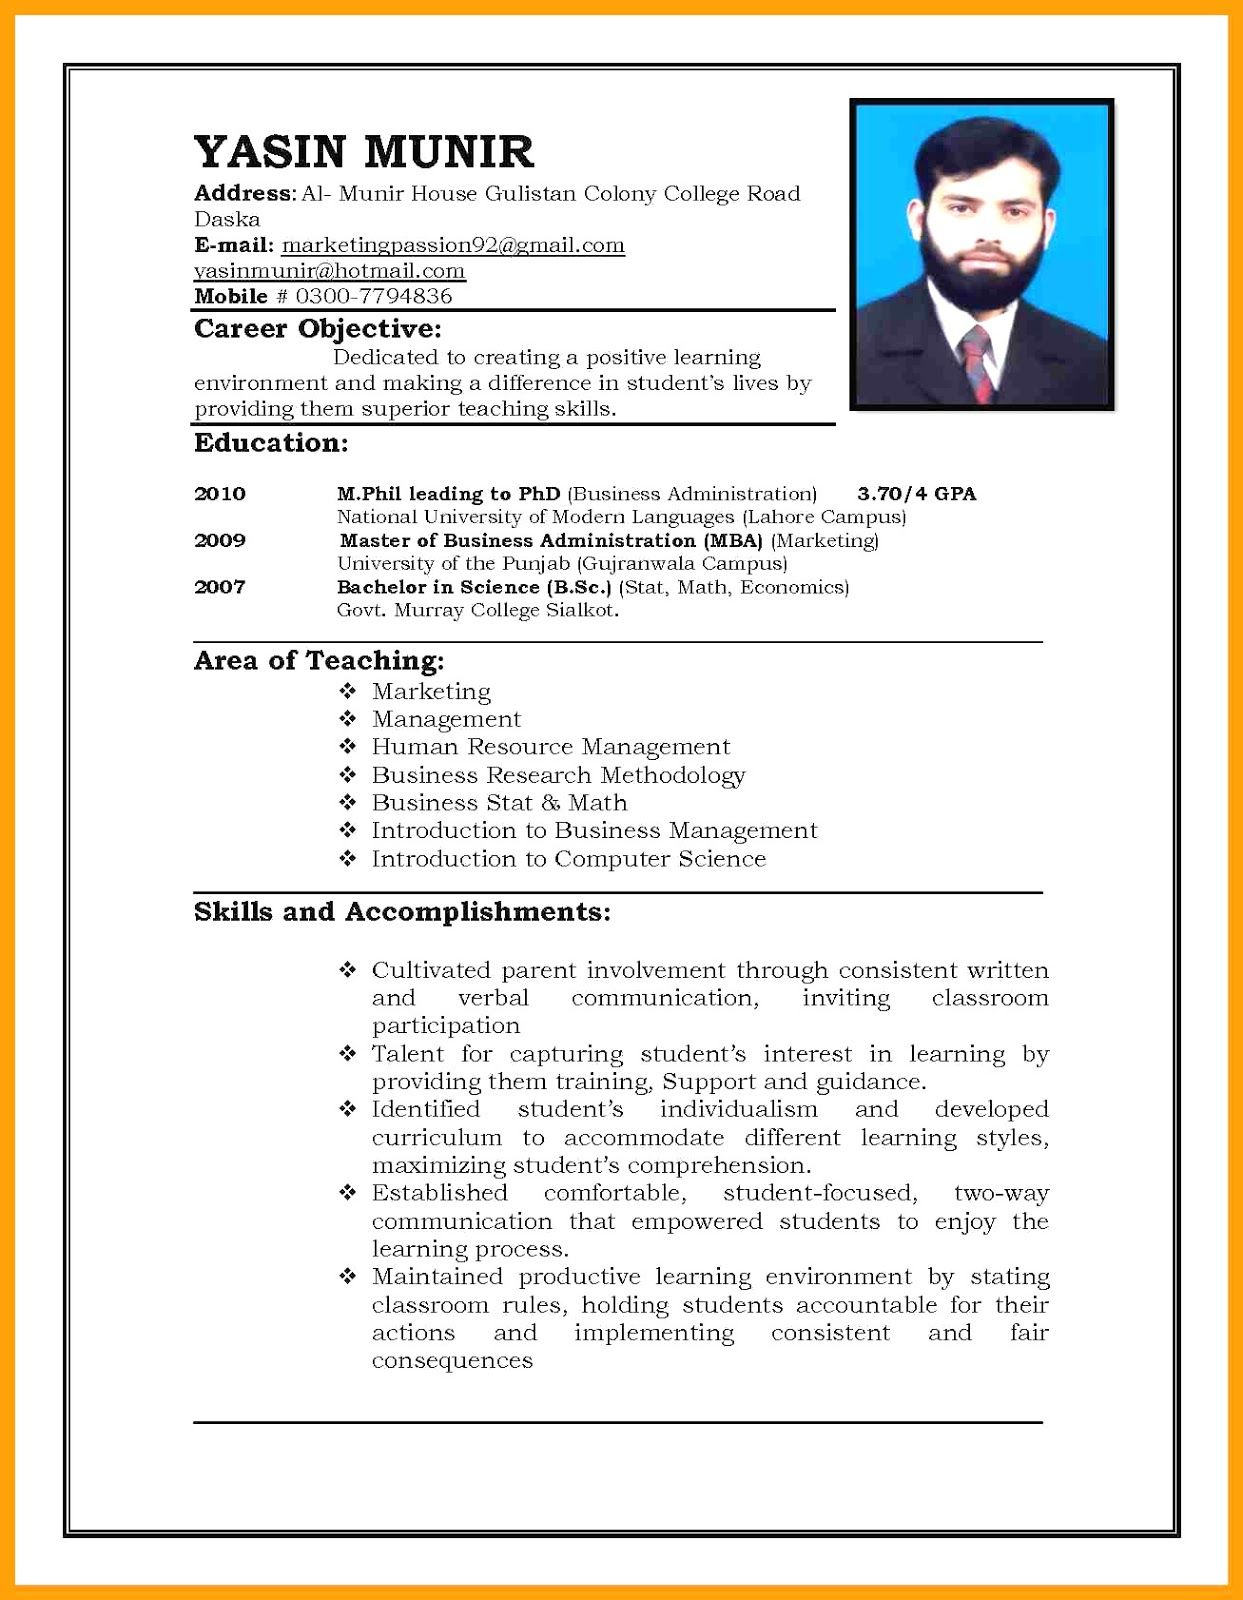 Job resume format image by Golden Mobile on fahad in 2020